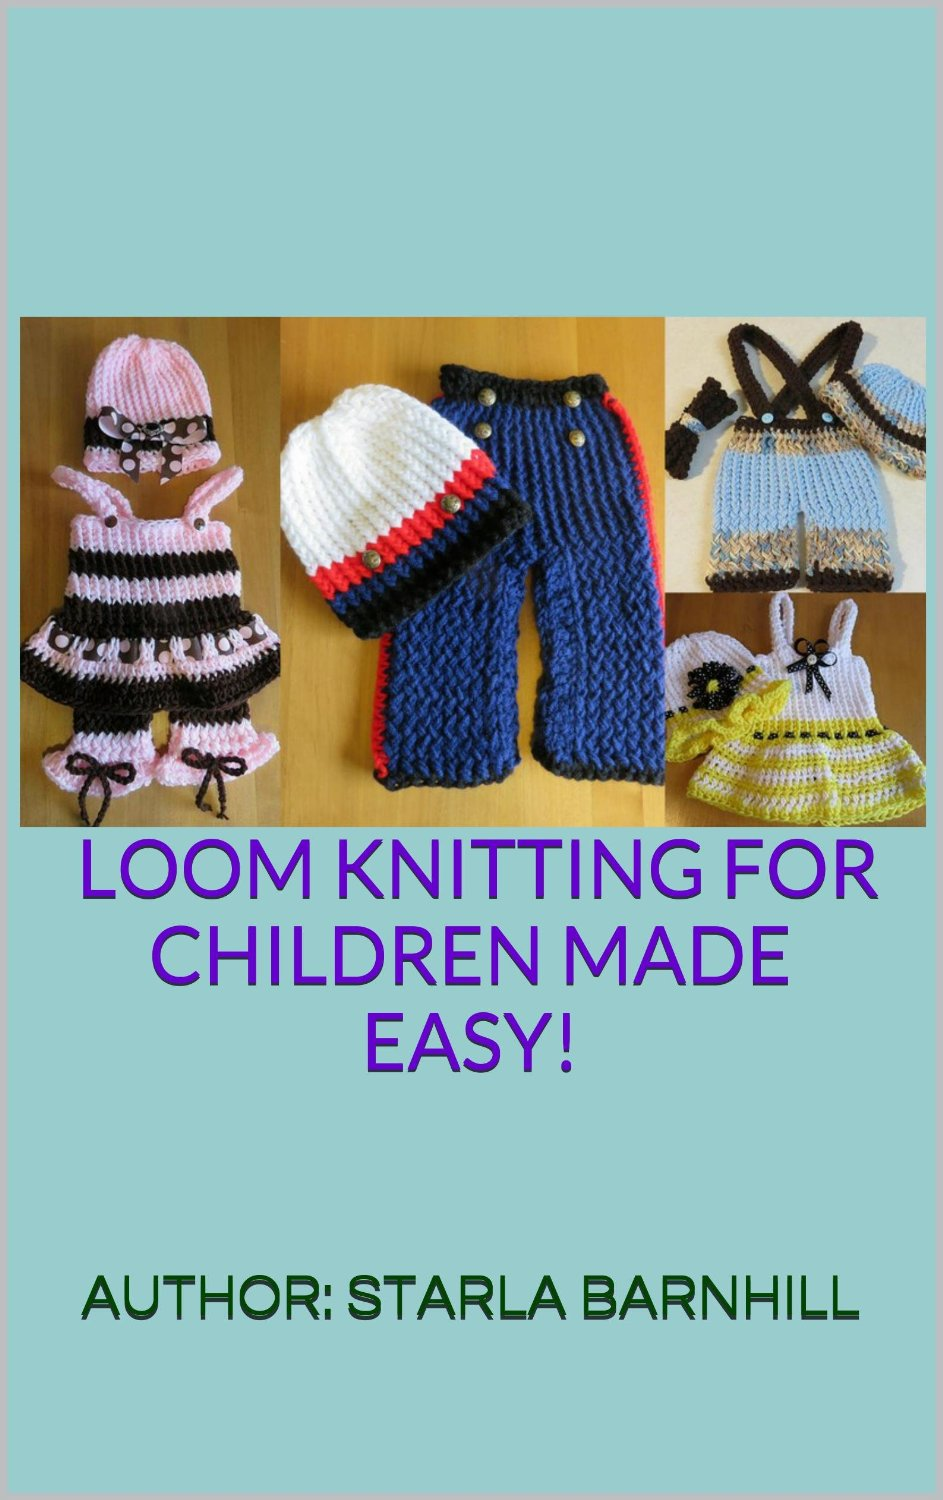 Knitting Pattern Books For Toddlers : Loom Knitting Pattern Book: 38 Easy, No-Needle Designs for ...